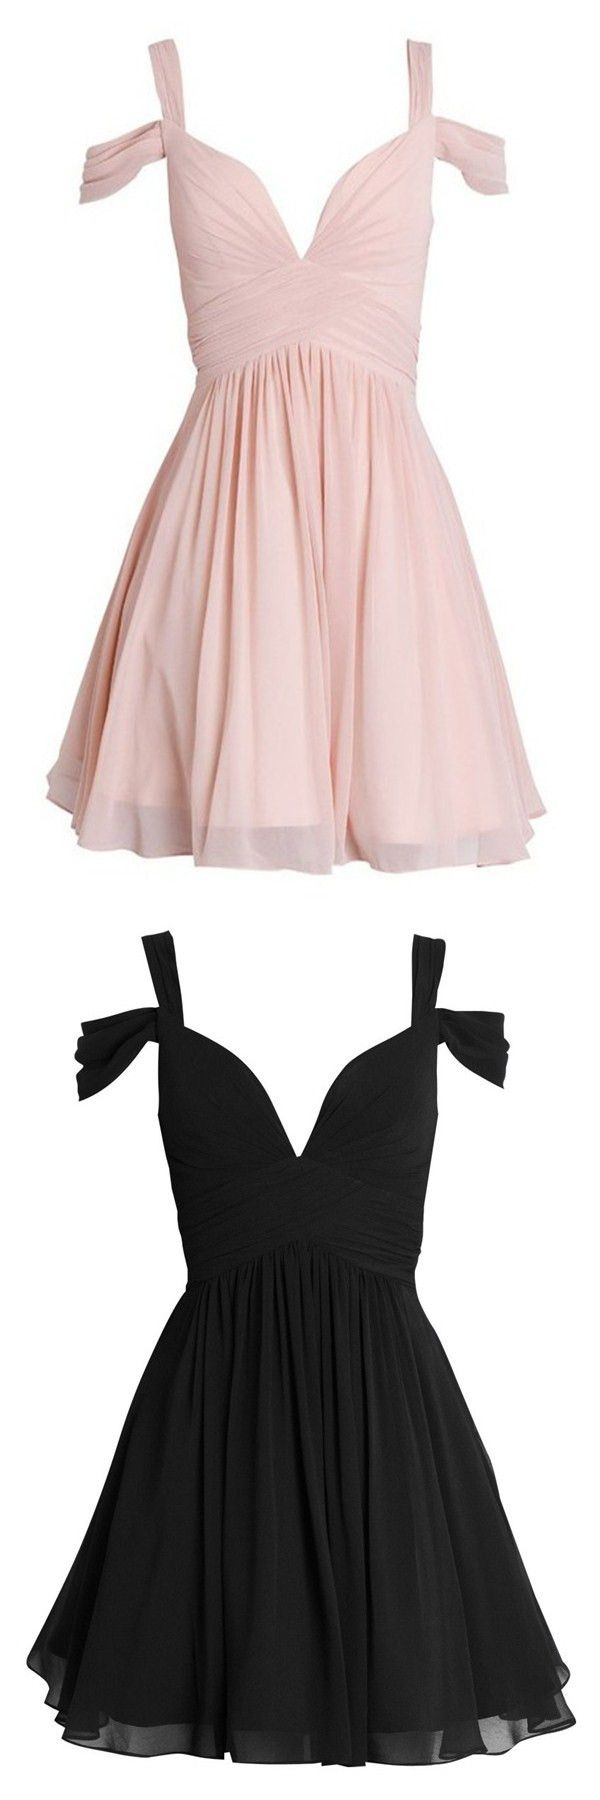 Cheap Pink And Black Party Dresses 66